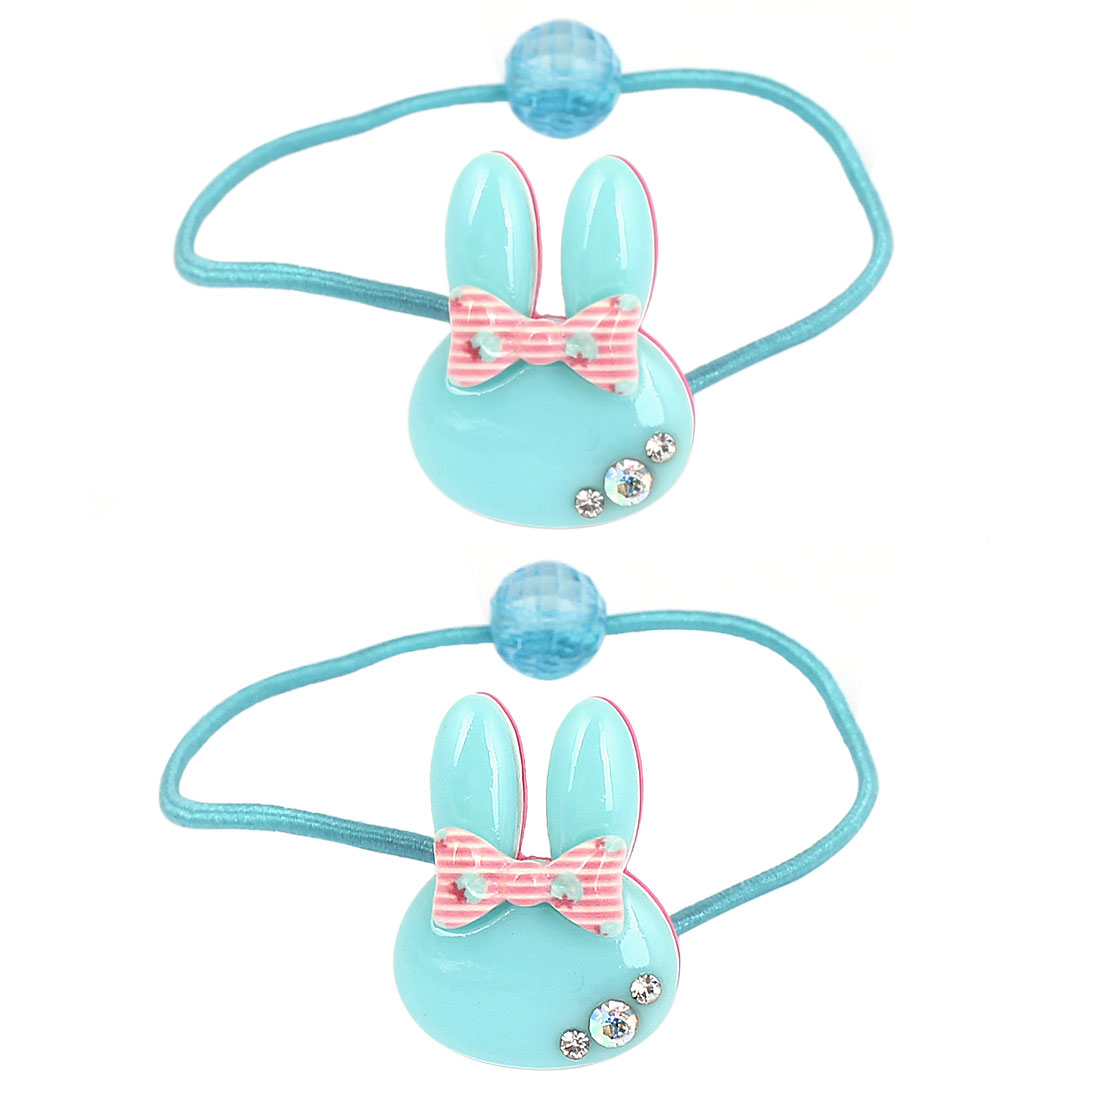 2 Pcs Rabbit Ear Bead Bowknot Rhinestone Detail Decor Stretchy Hair Tie Ponytail Holder for Girls Blue